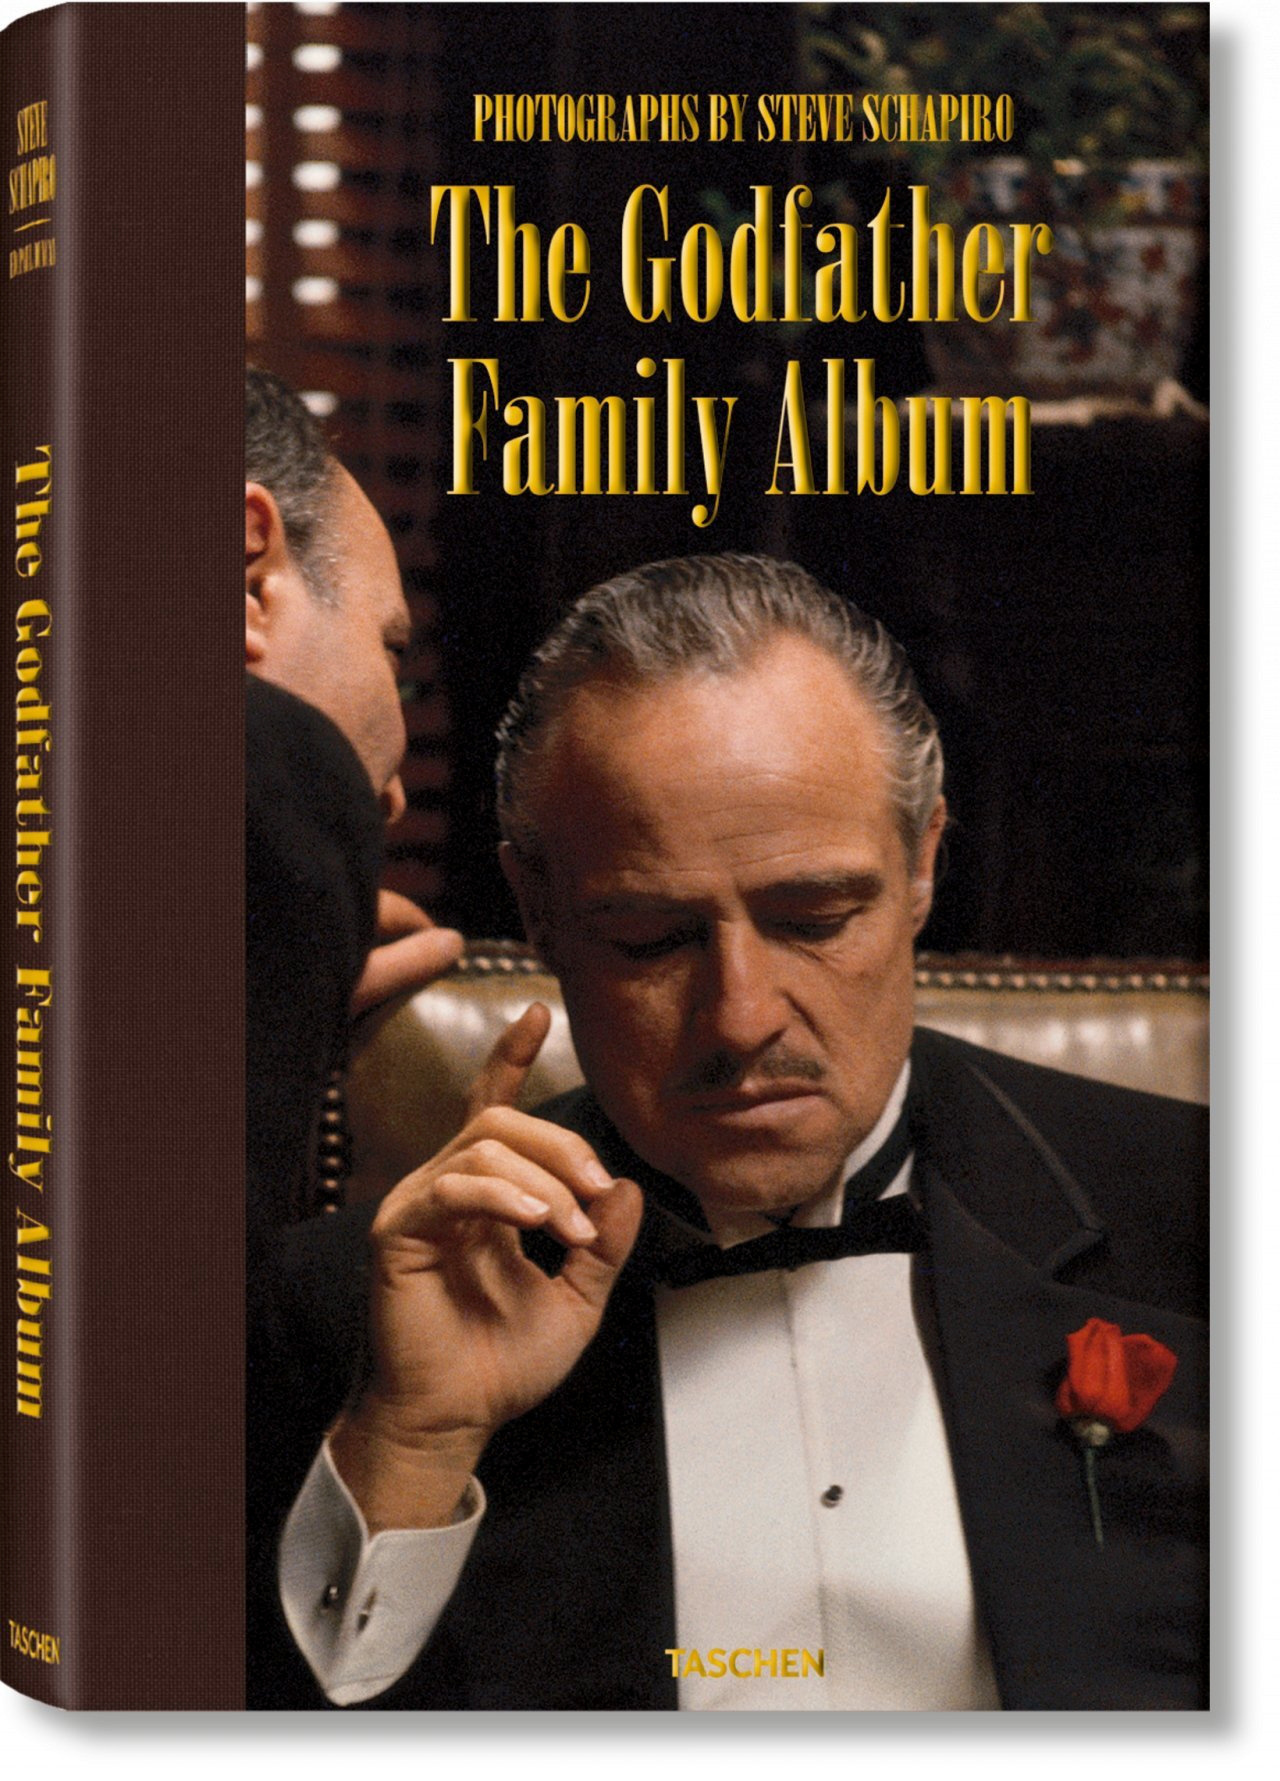 JU-THE GODFATHER FAMILY ALBUM-TRILINGUE